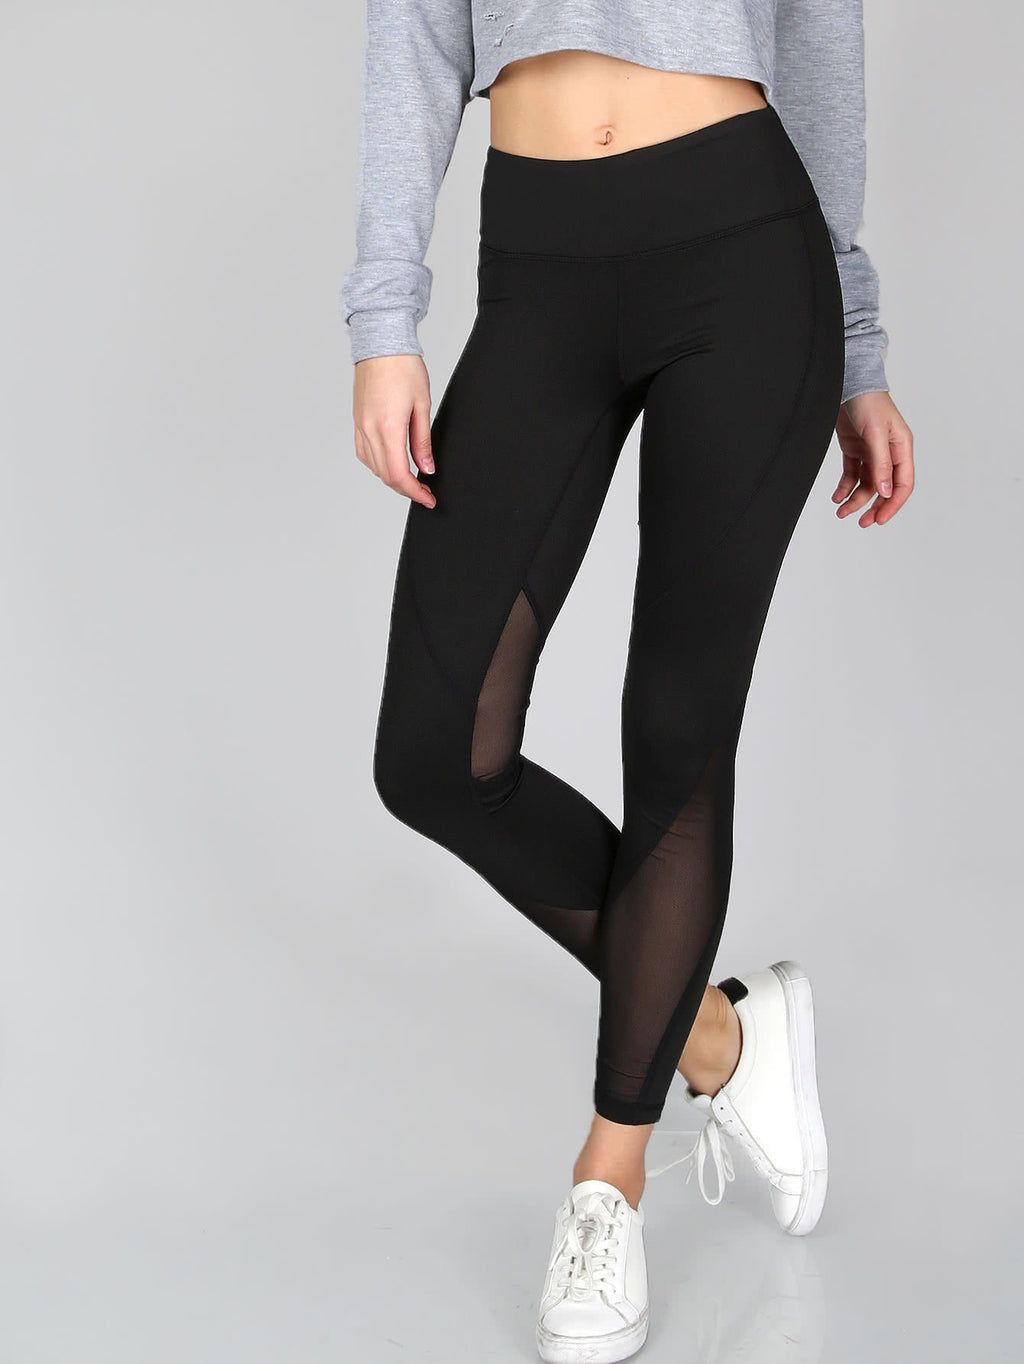 Brodie black leggings with sheer panel